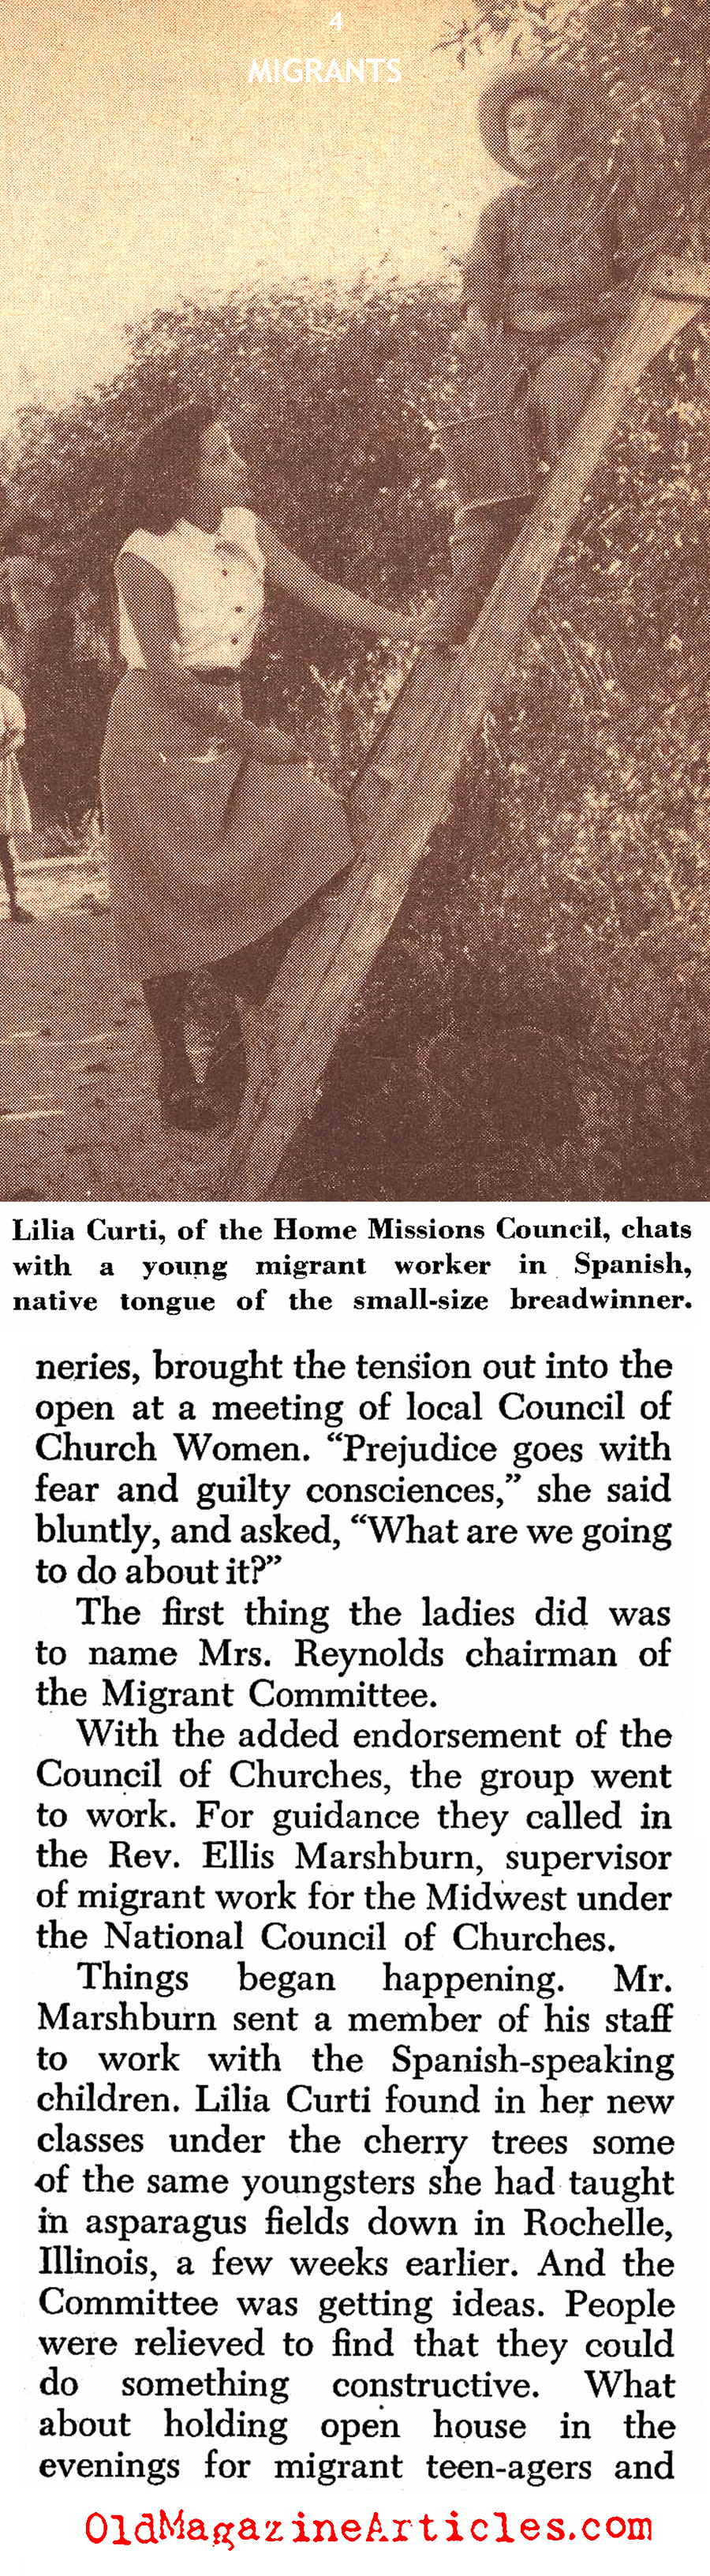 Migrant Labor in Wisconsin (Christian Herald, 1952)